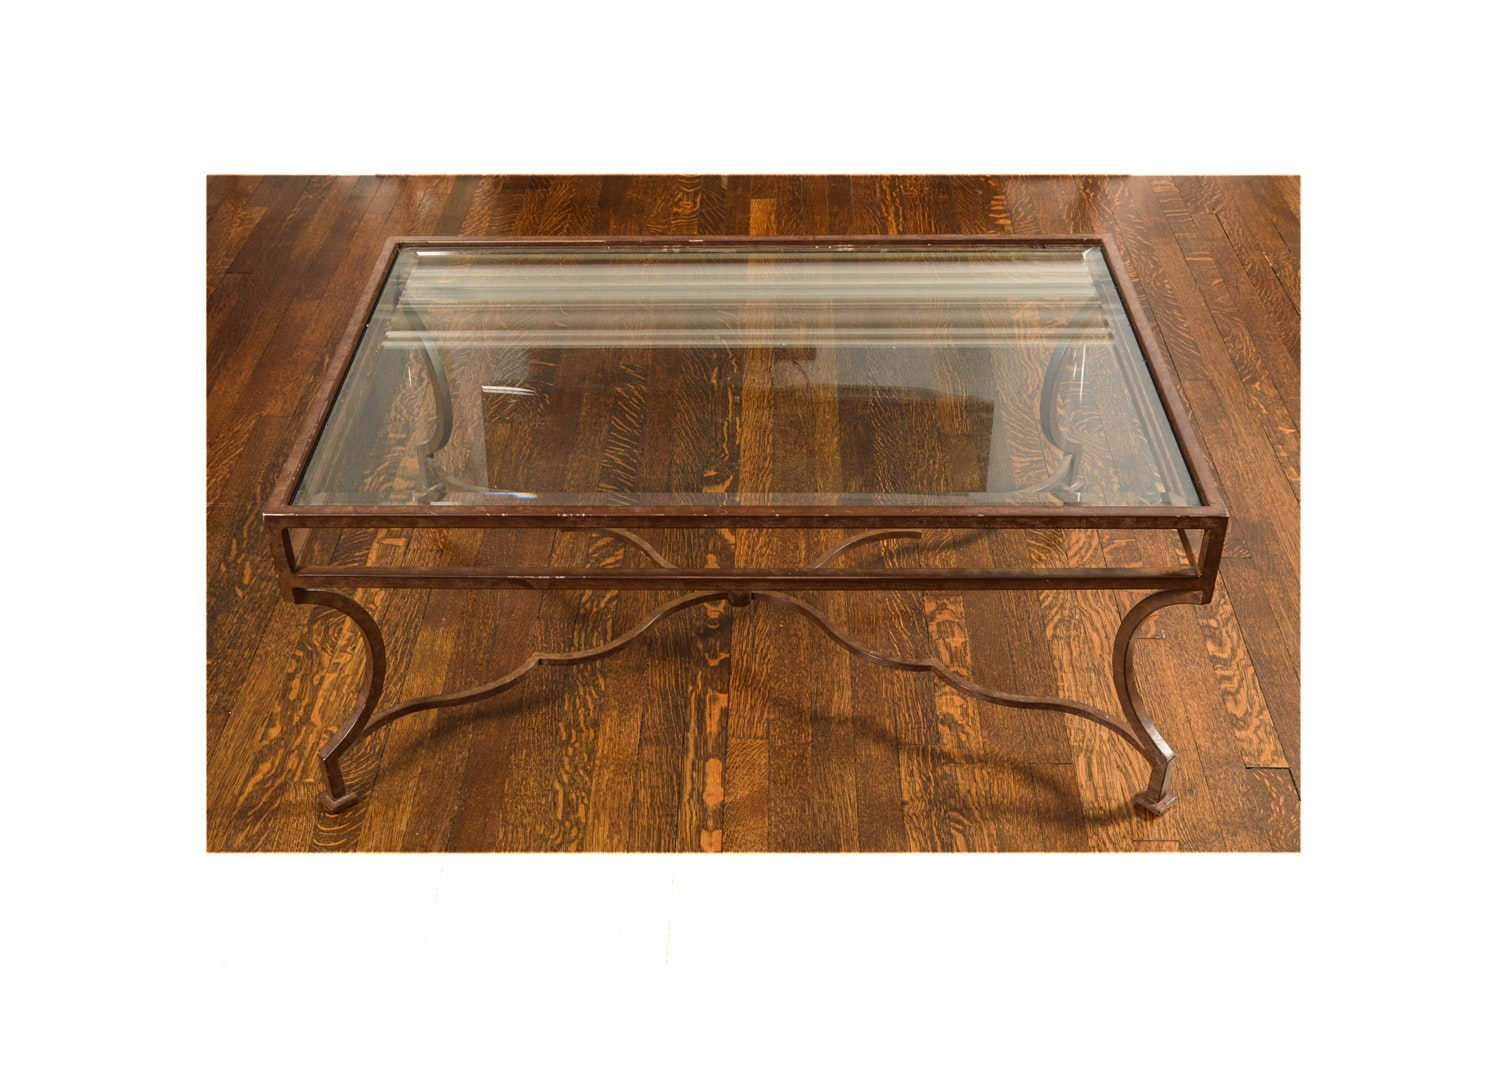 Wrought Metal Framed Glass Coffee Table by Niermann Weeks